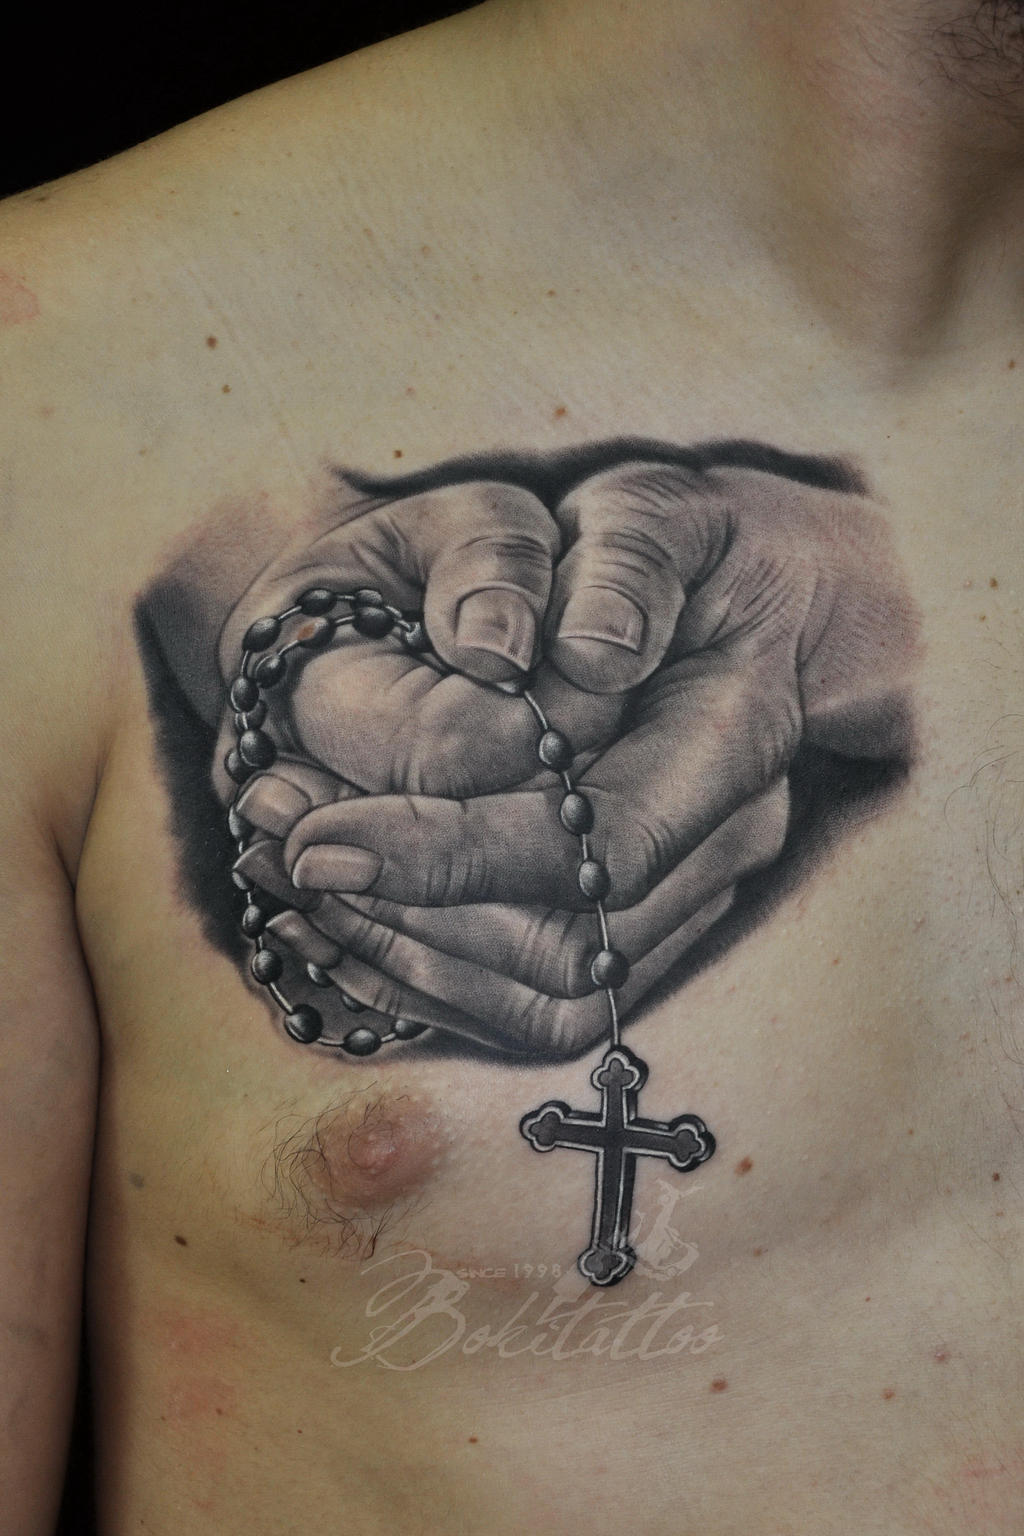 Traditional Praying Hands Tattoo Black And Gray: Praying Hands Tattoo By Bokitattoo On DeviantArt